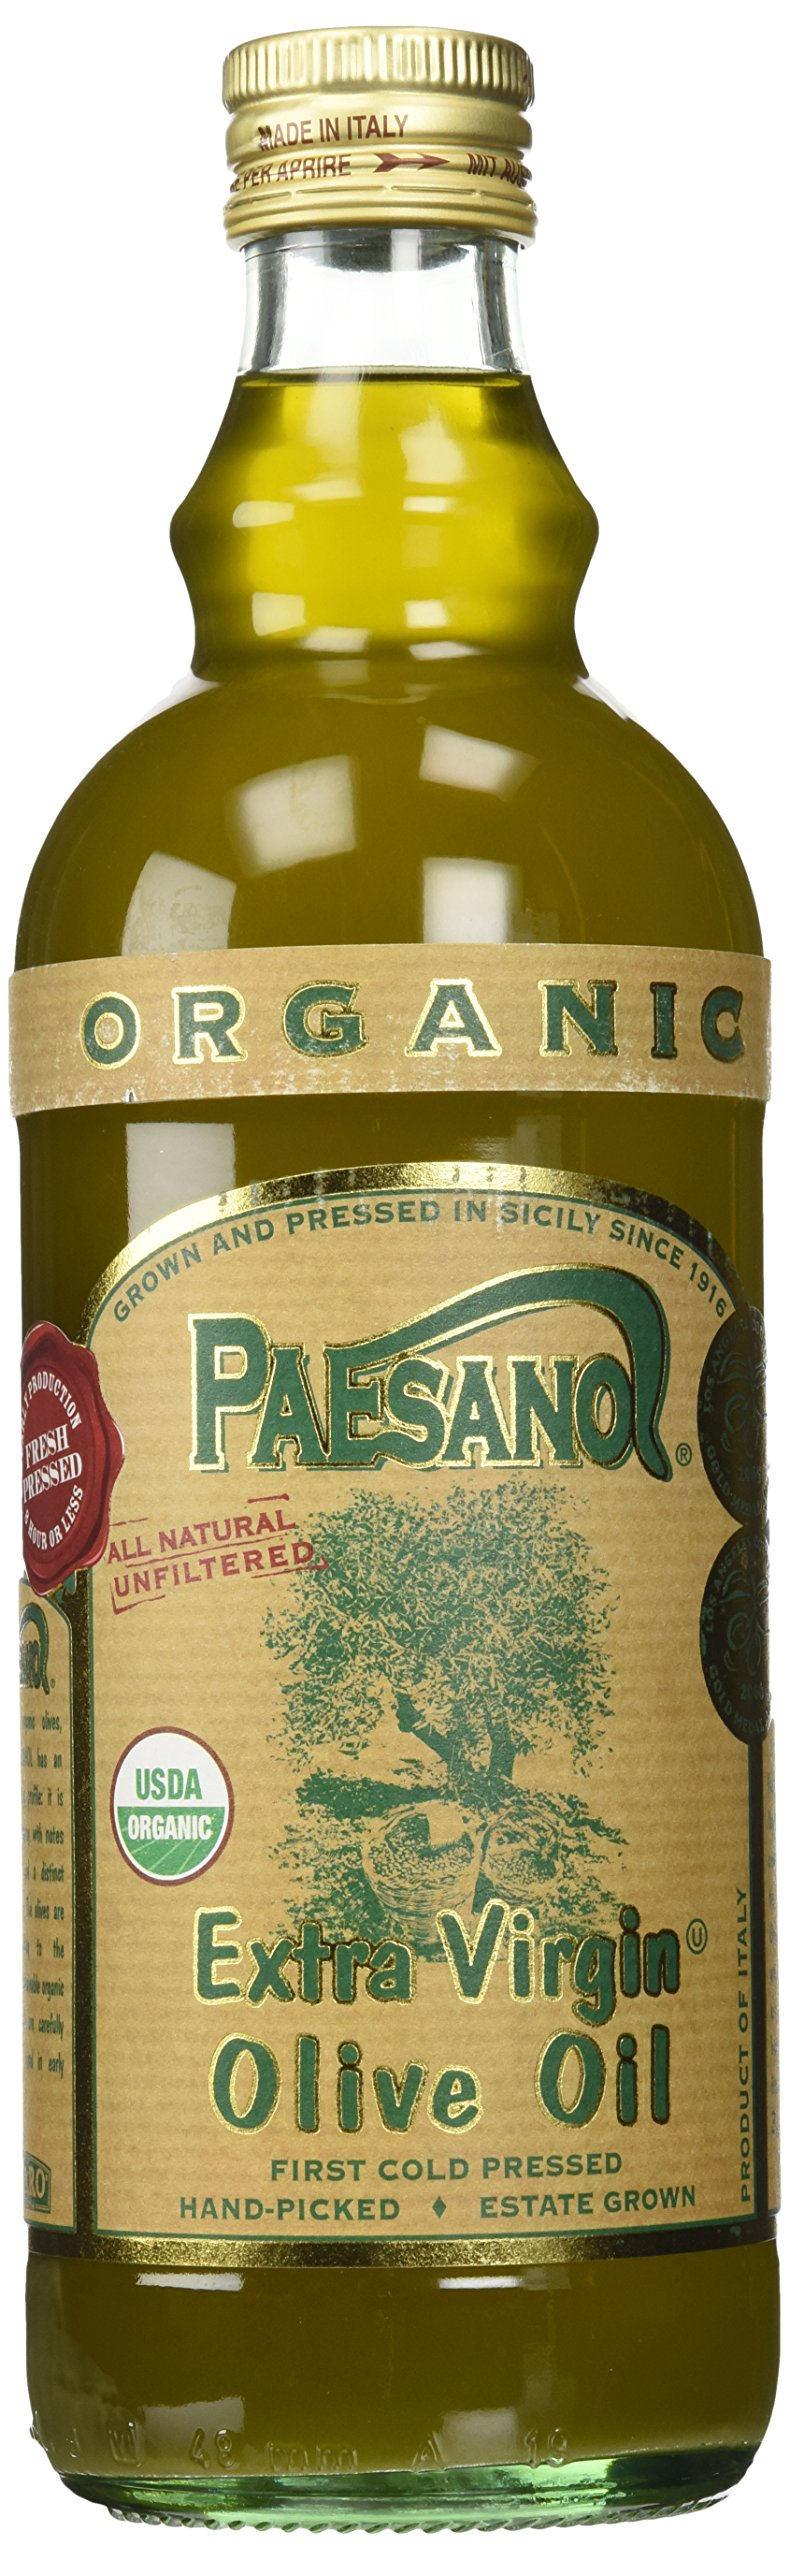 Paesano Organic Unfiltered Extra Virgin Olive Oil - 34oz by Paesano